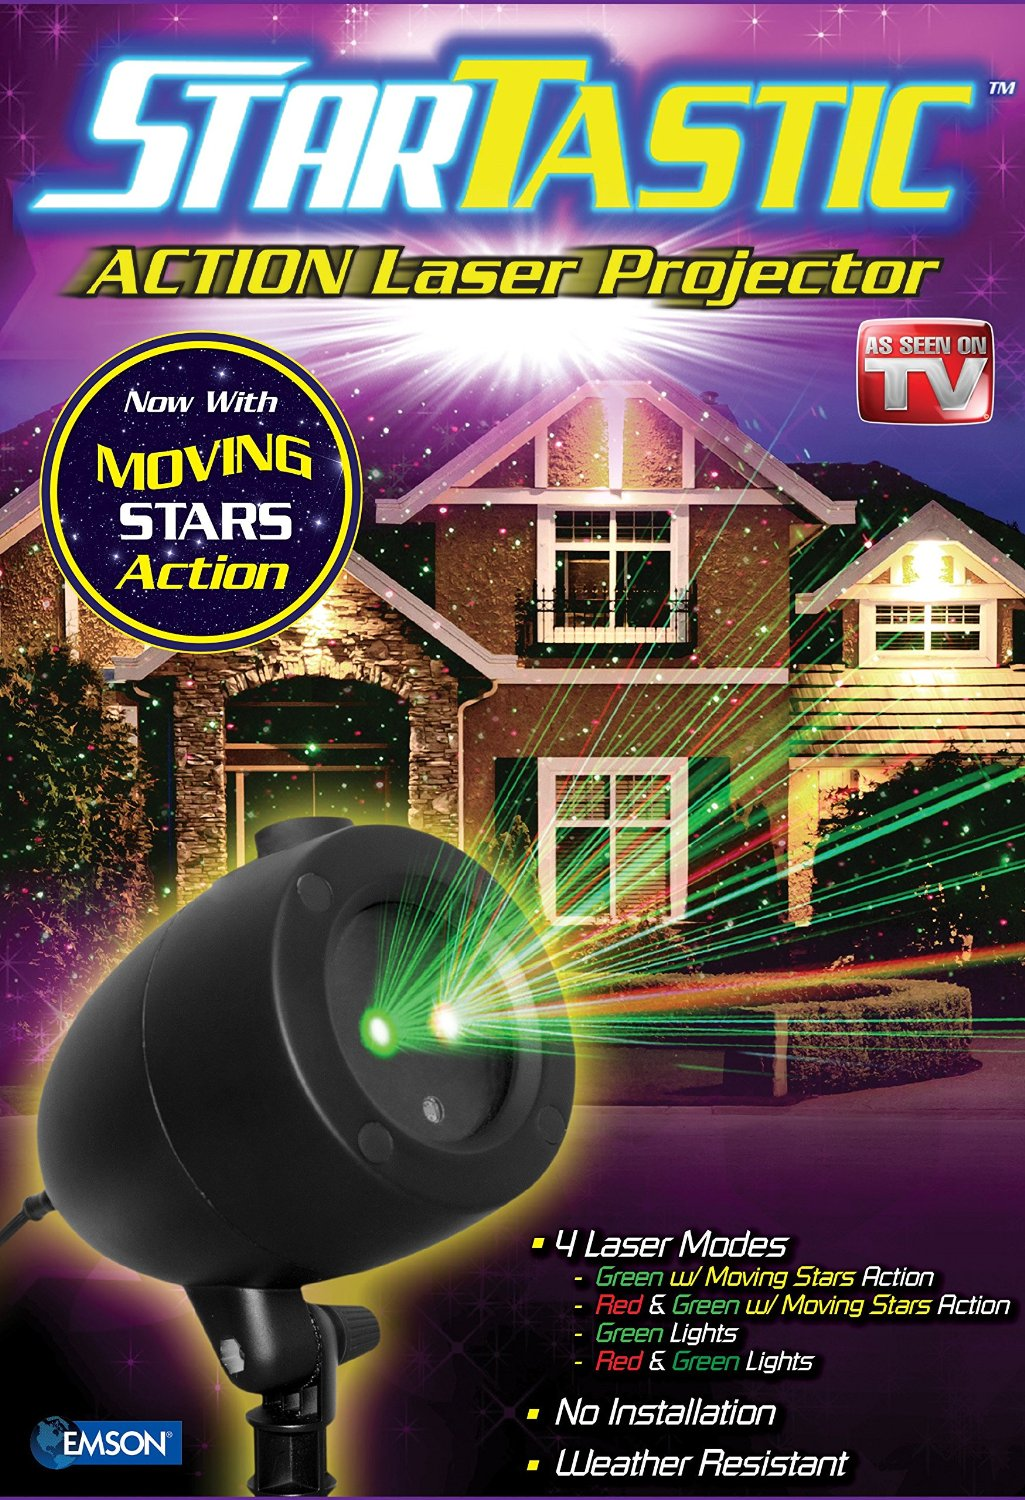 As Seen on TV Startastic Holiday Laser Light Show Projector - Motion